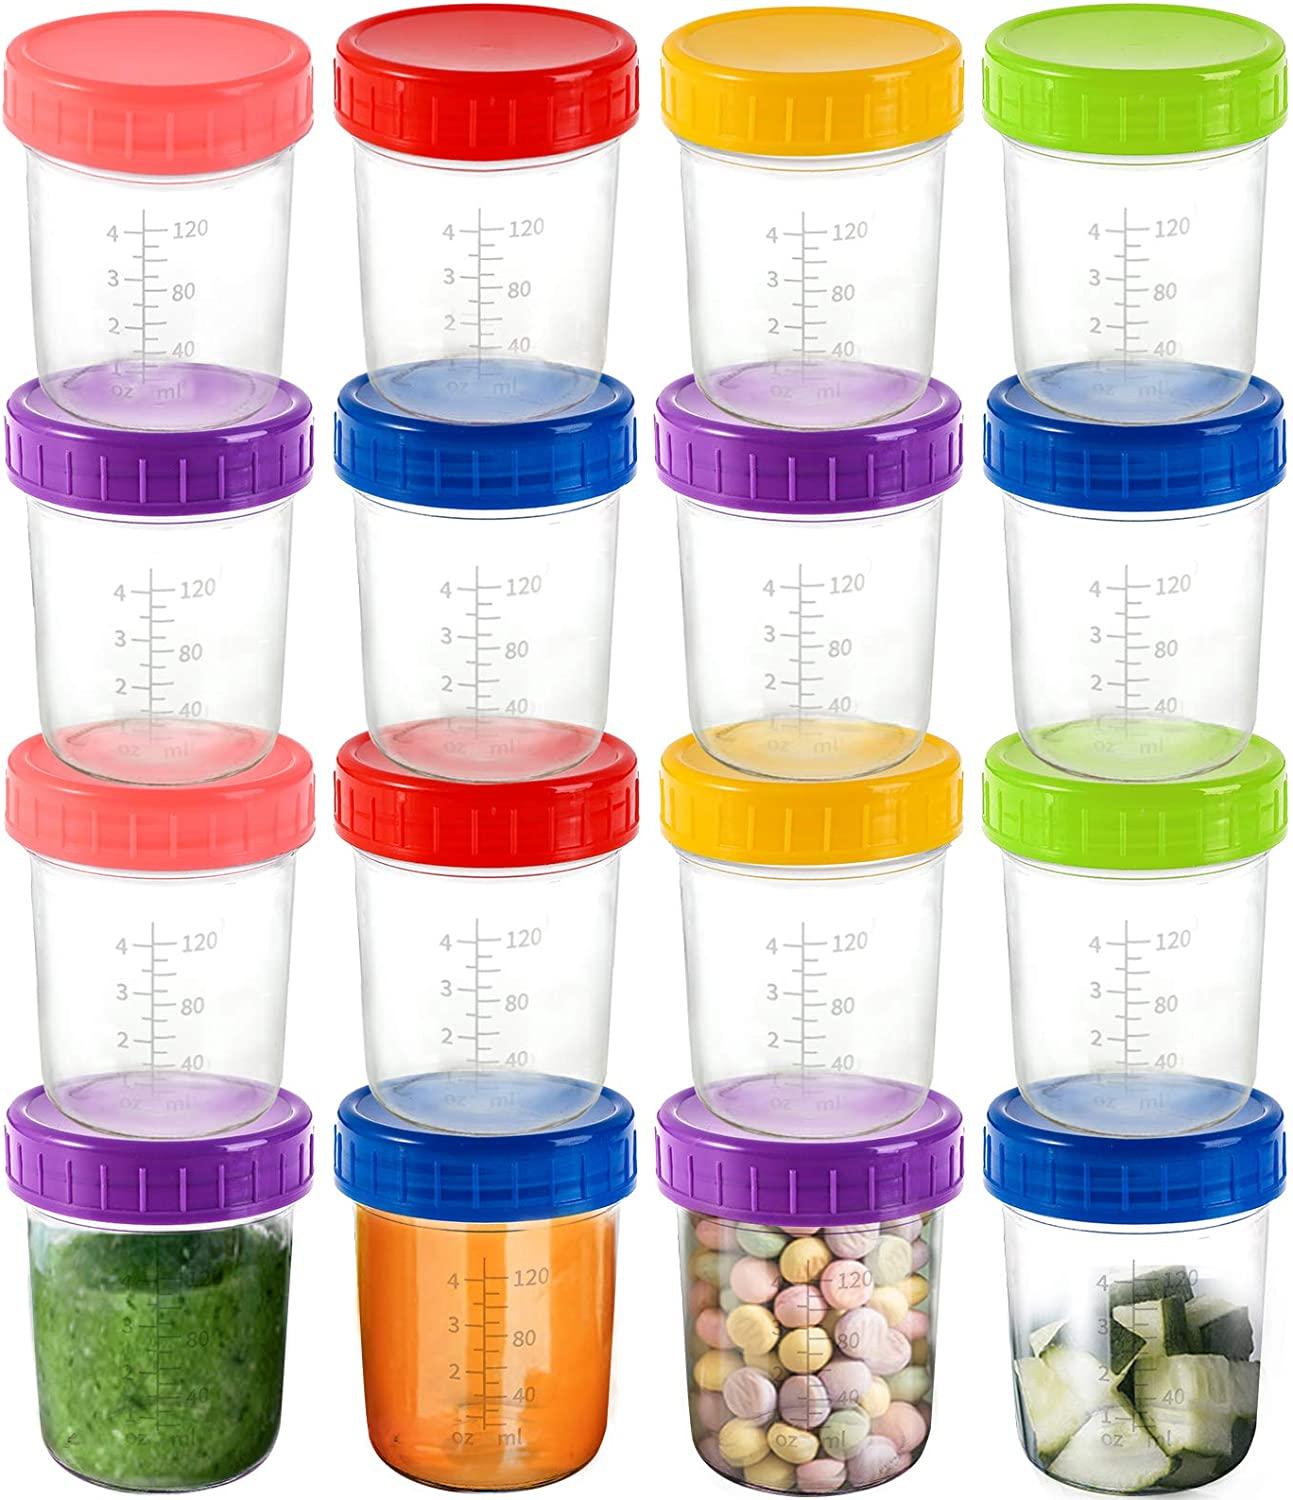 Jucoan 16 Pack Glass Baby Food Storage Jar, 6 Ounce Small Glass Jars, BPA Free Reusable Baby Food Containers with Colorful Lids & Marker, Leakproof, Microwave & Dishwasher Safe